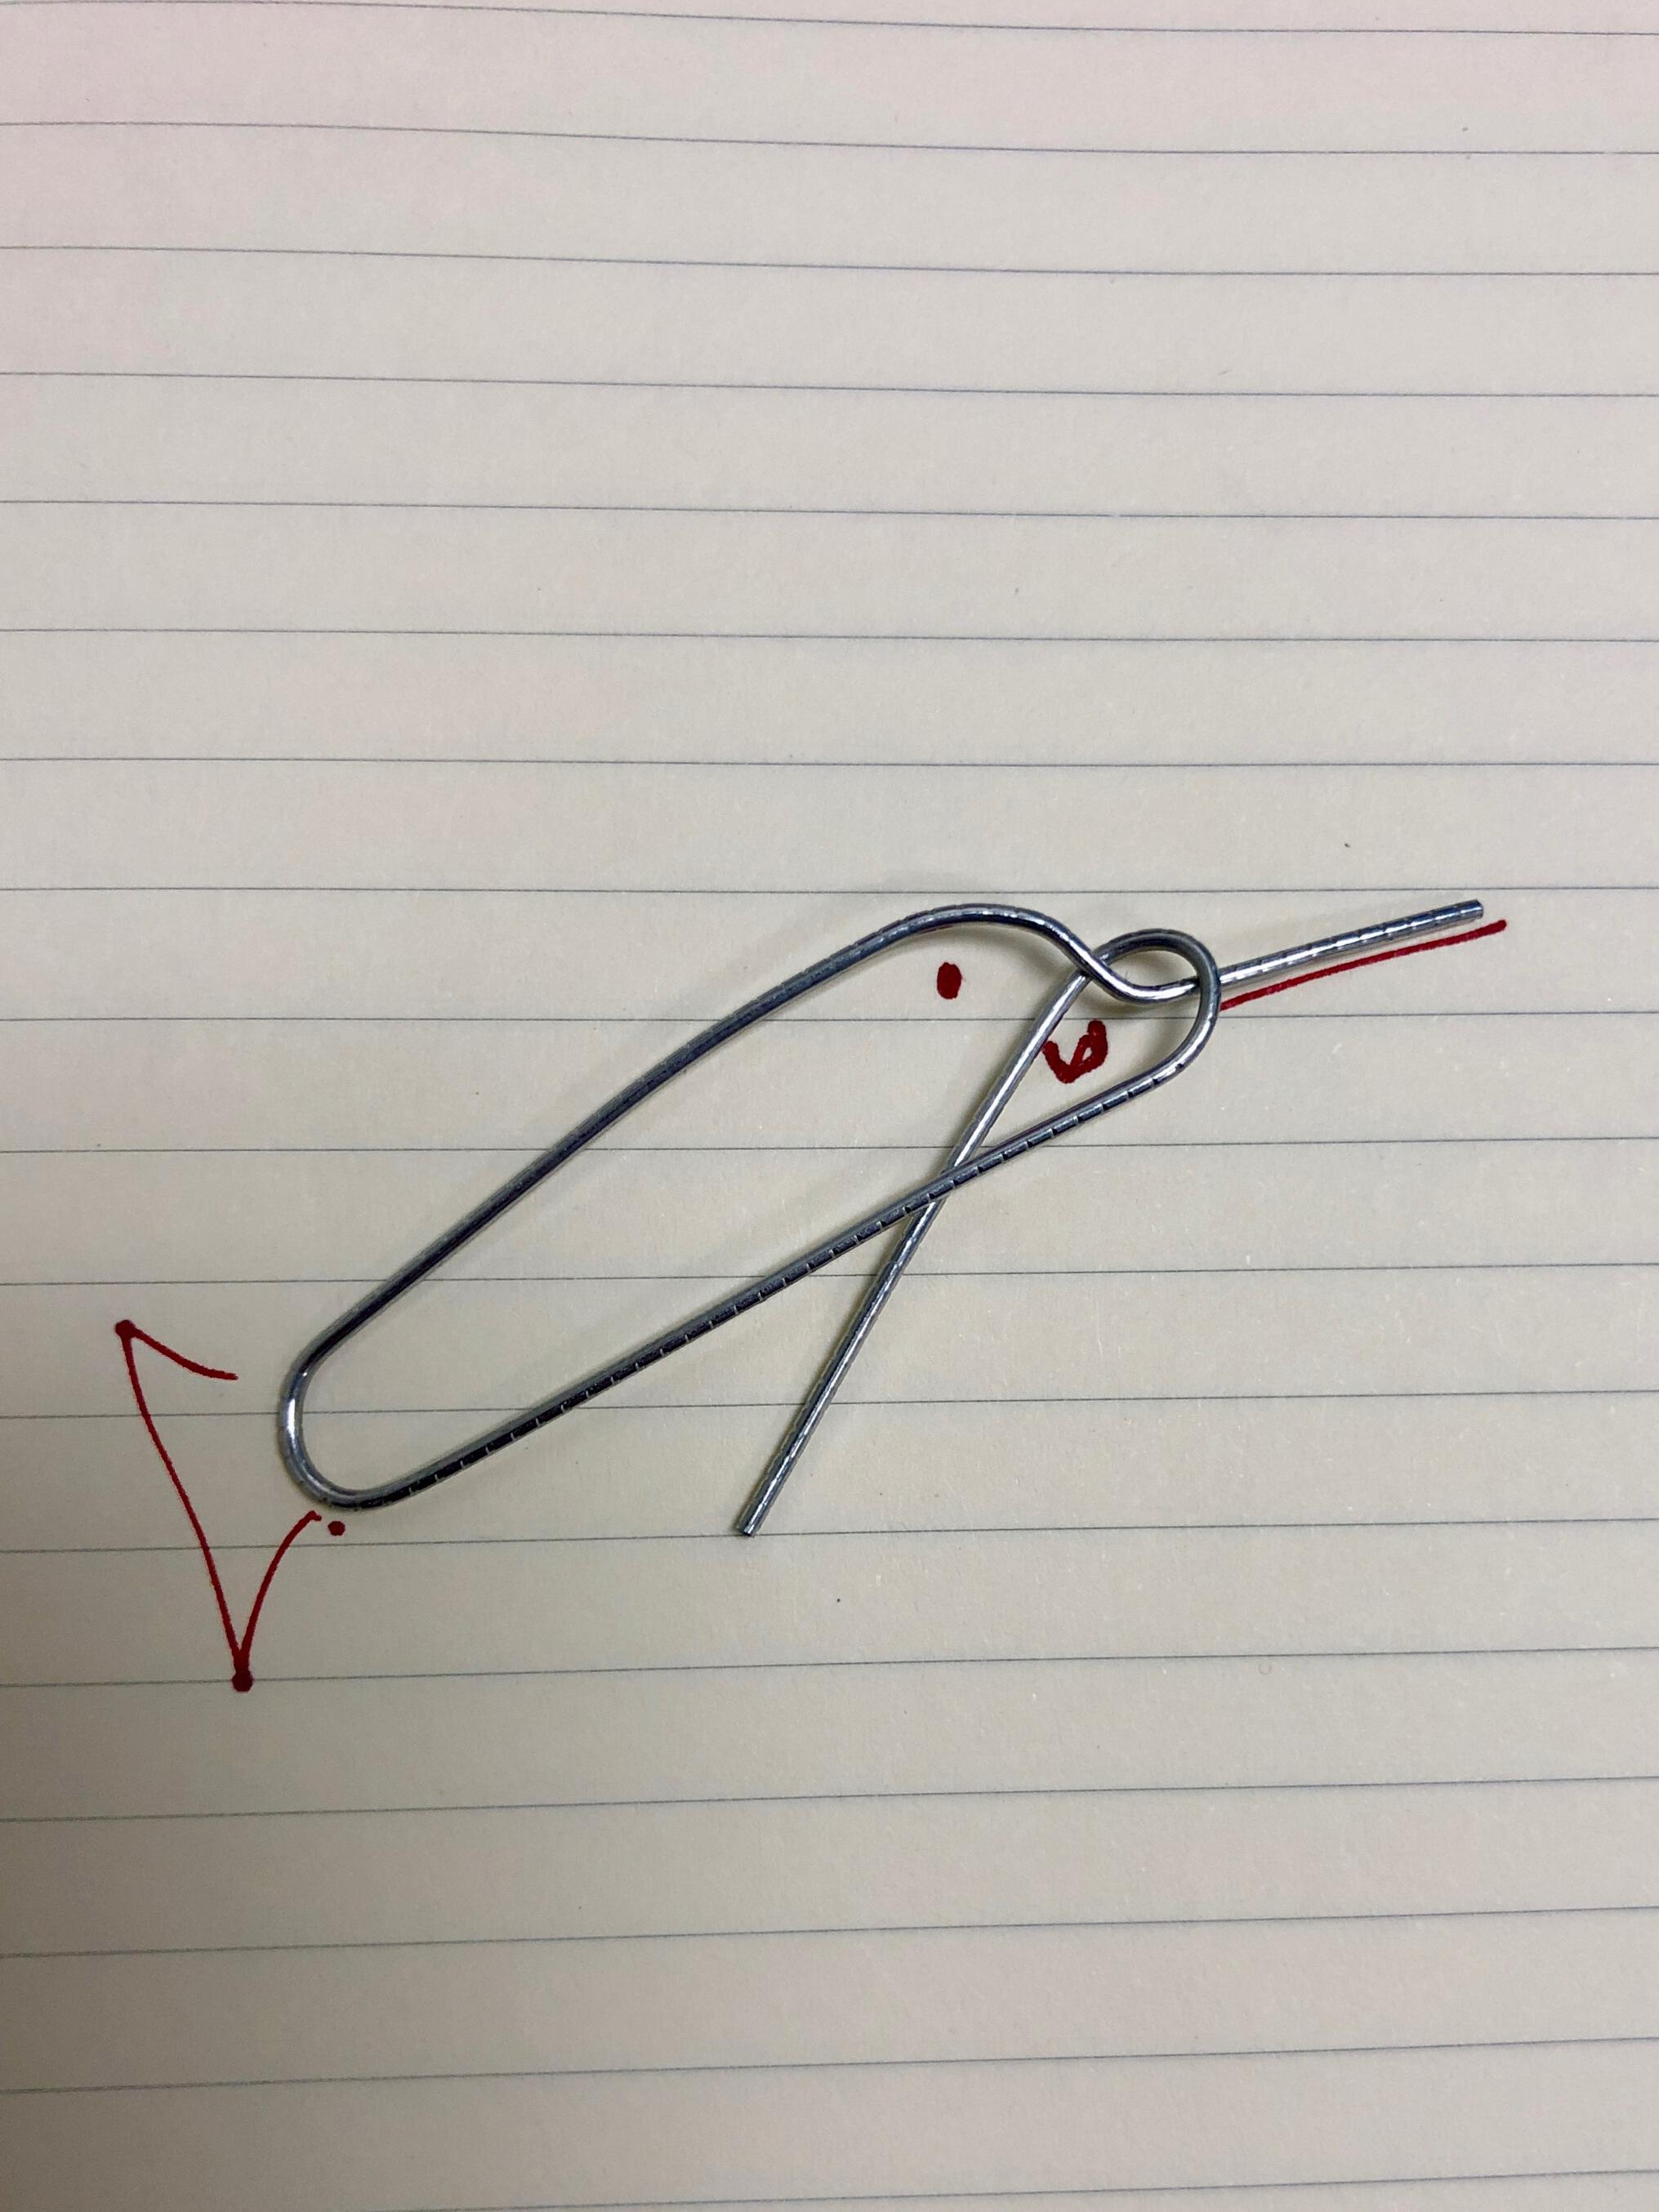 photo of a paperclip twisted into the shape of a narwhal